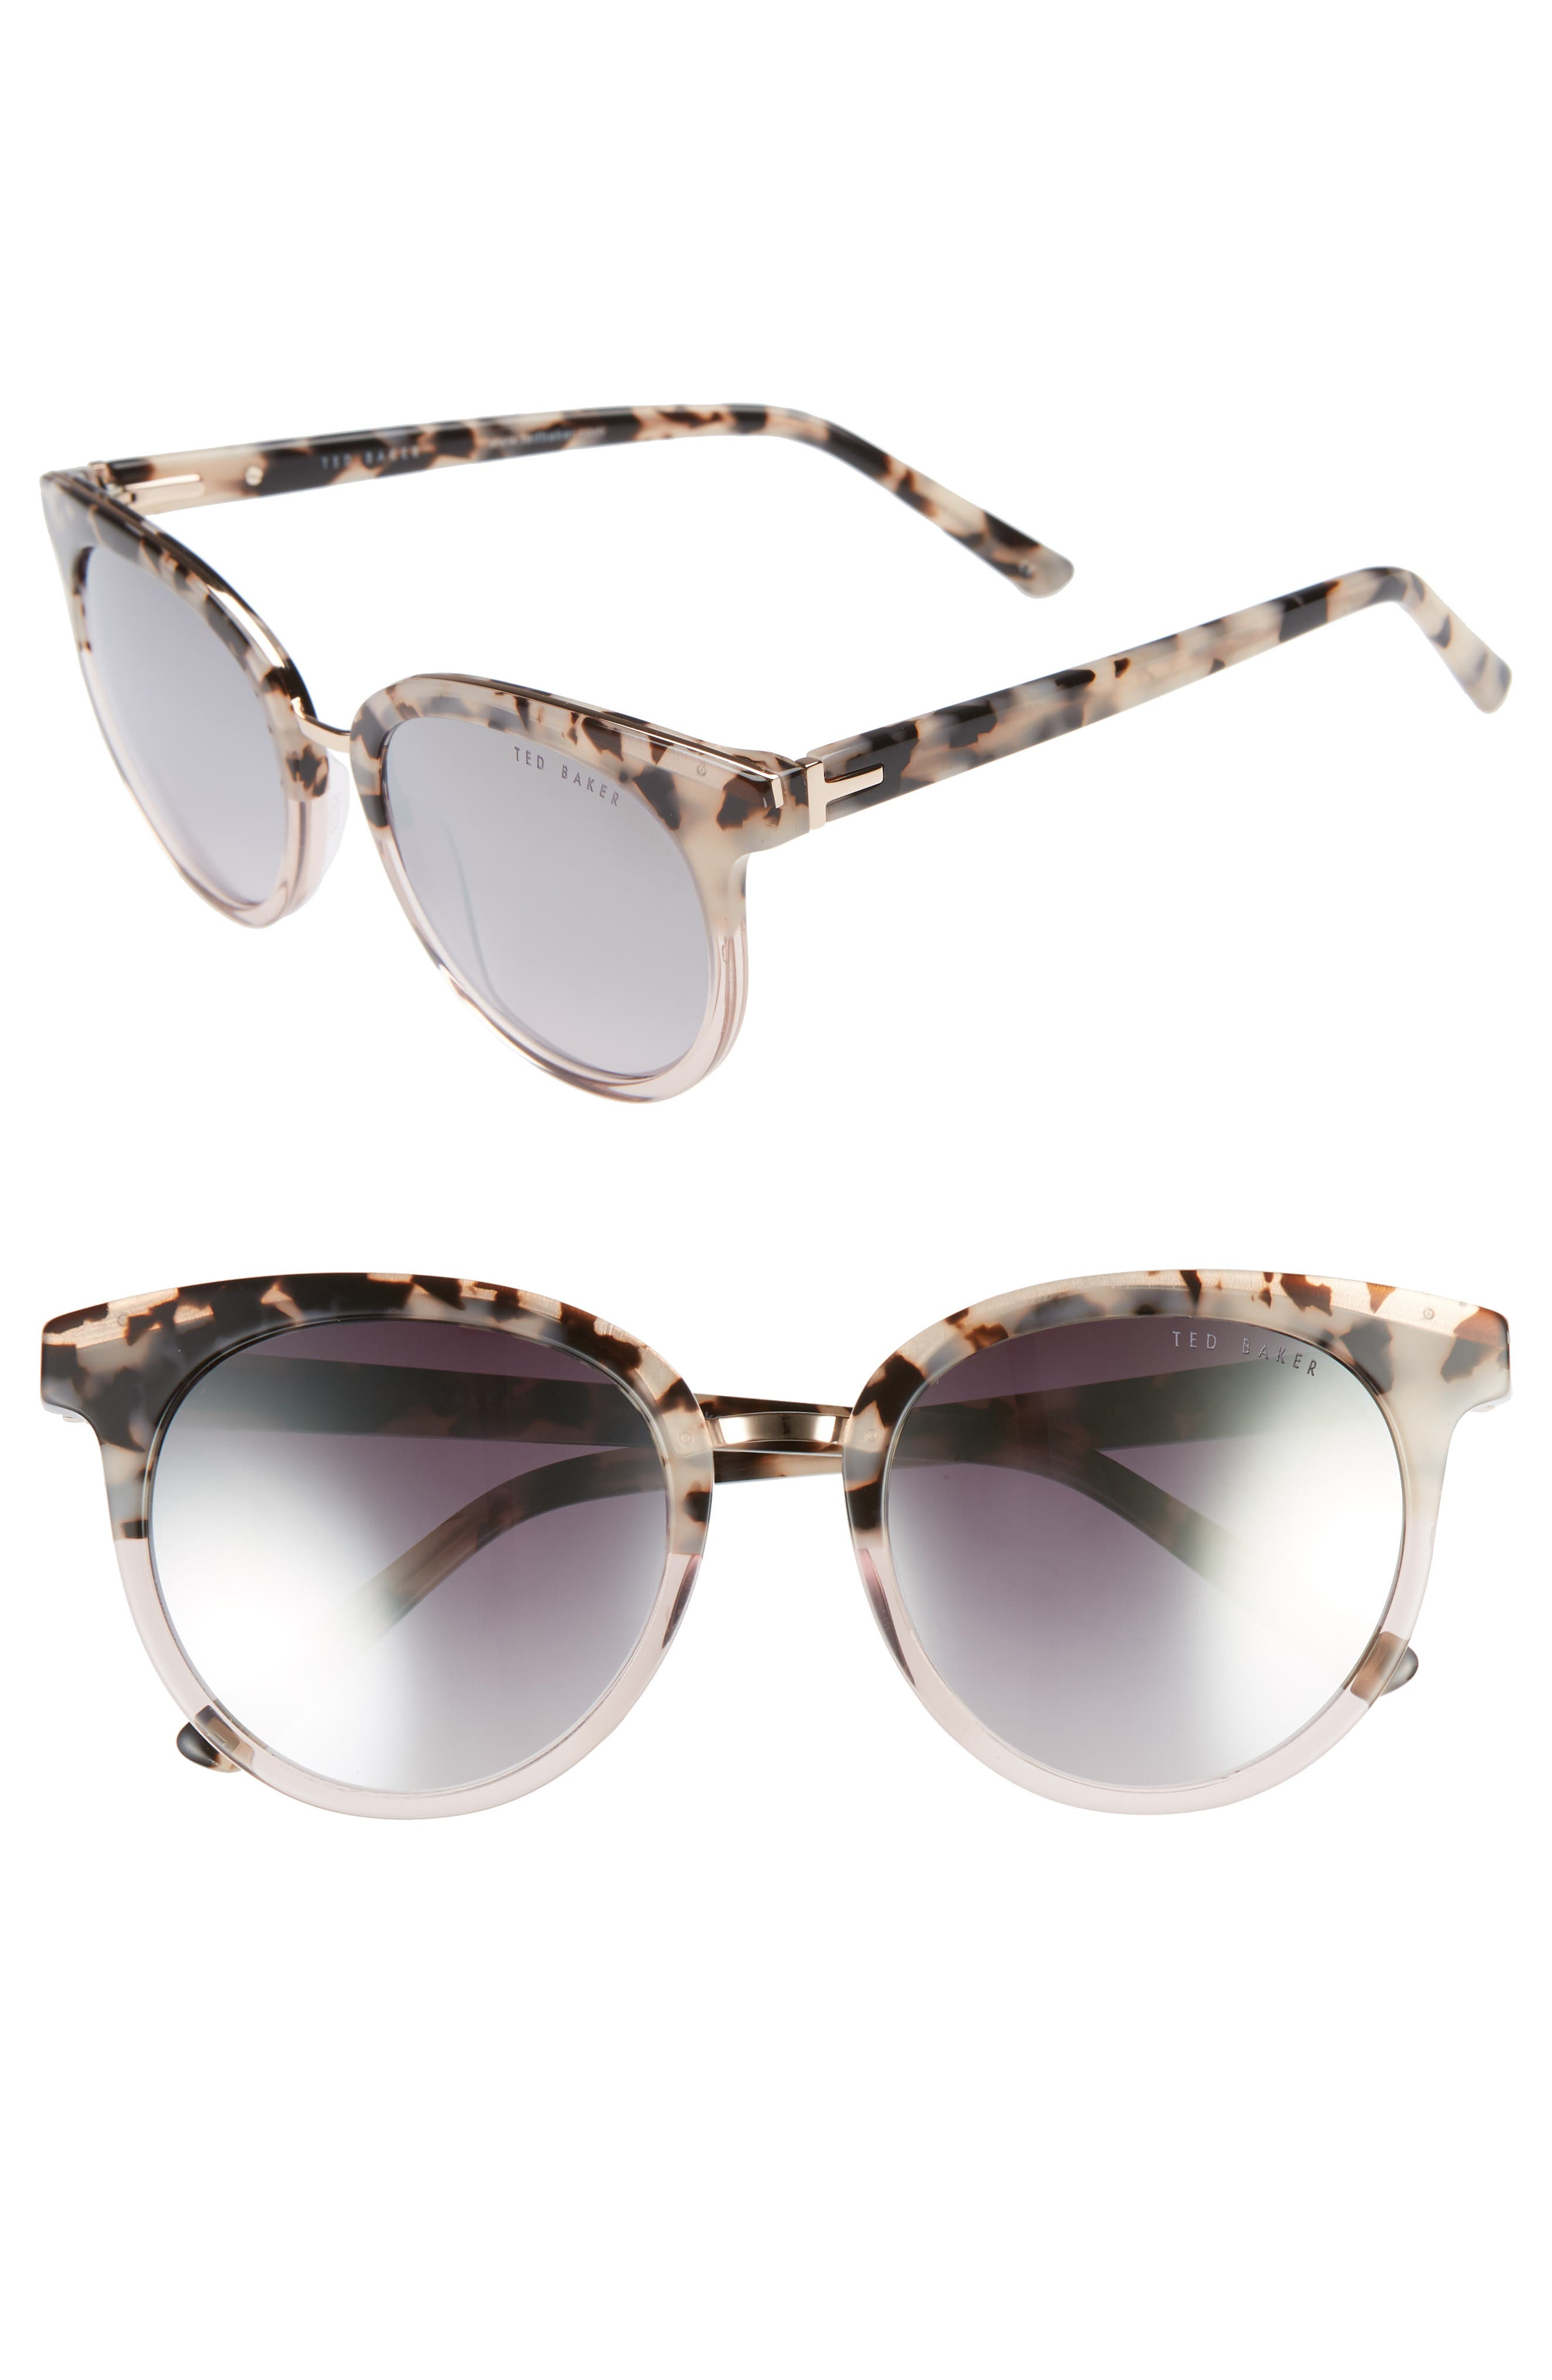 52mm Round Sunglasses,                         Main,                         color, IVORY